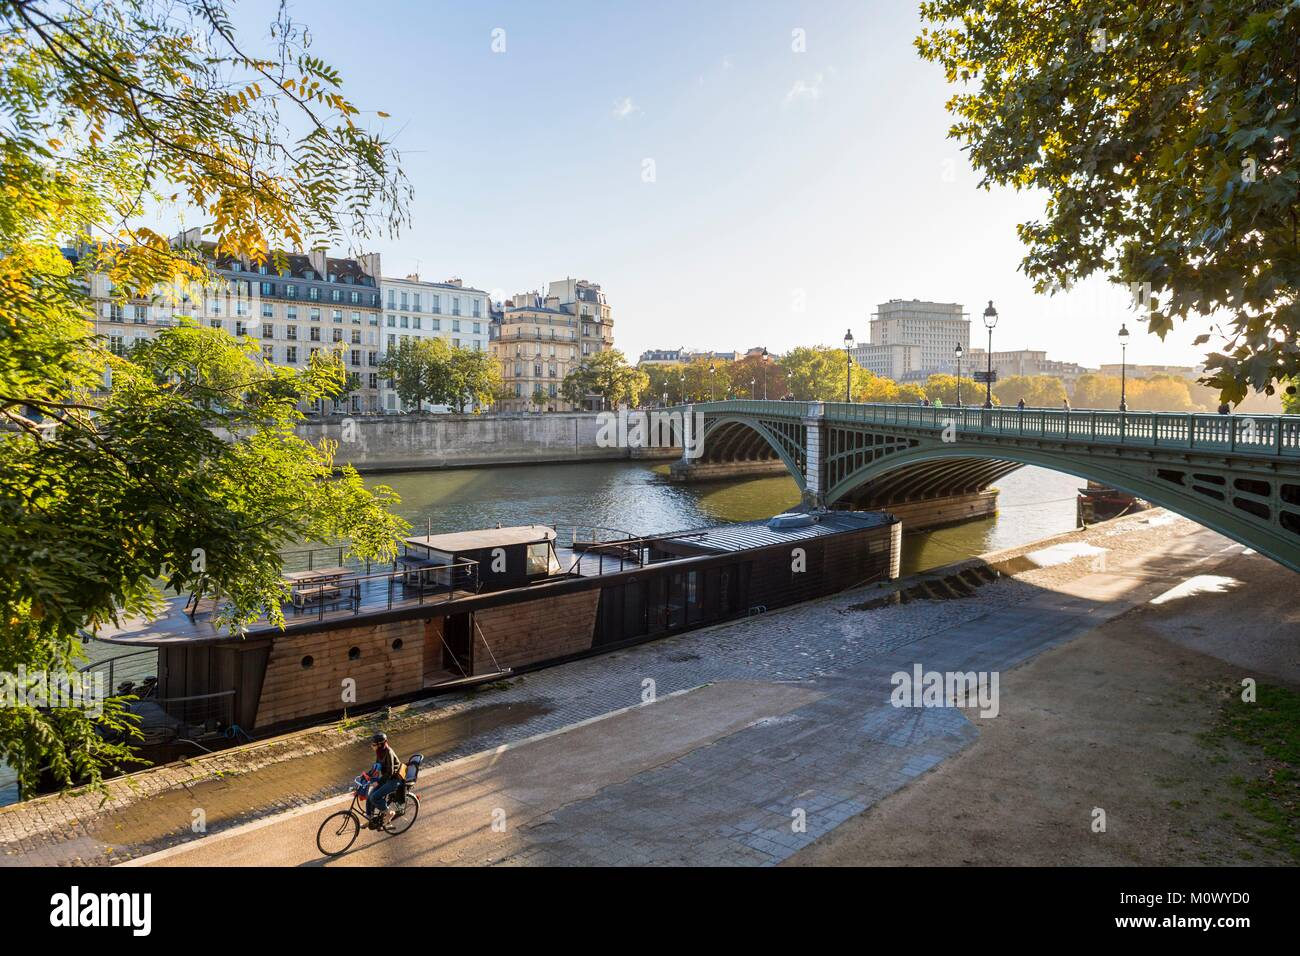 France,Paris,the Rive Gauche quays and the Sully bridge - Stock Image